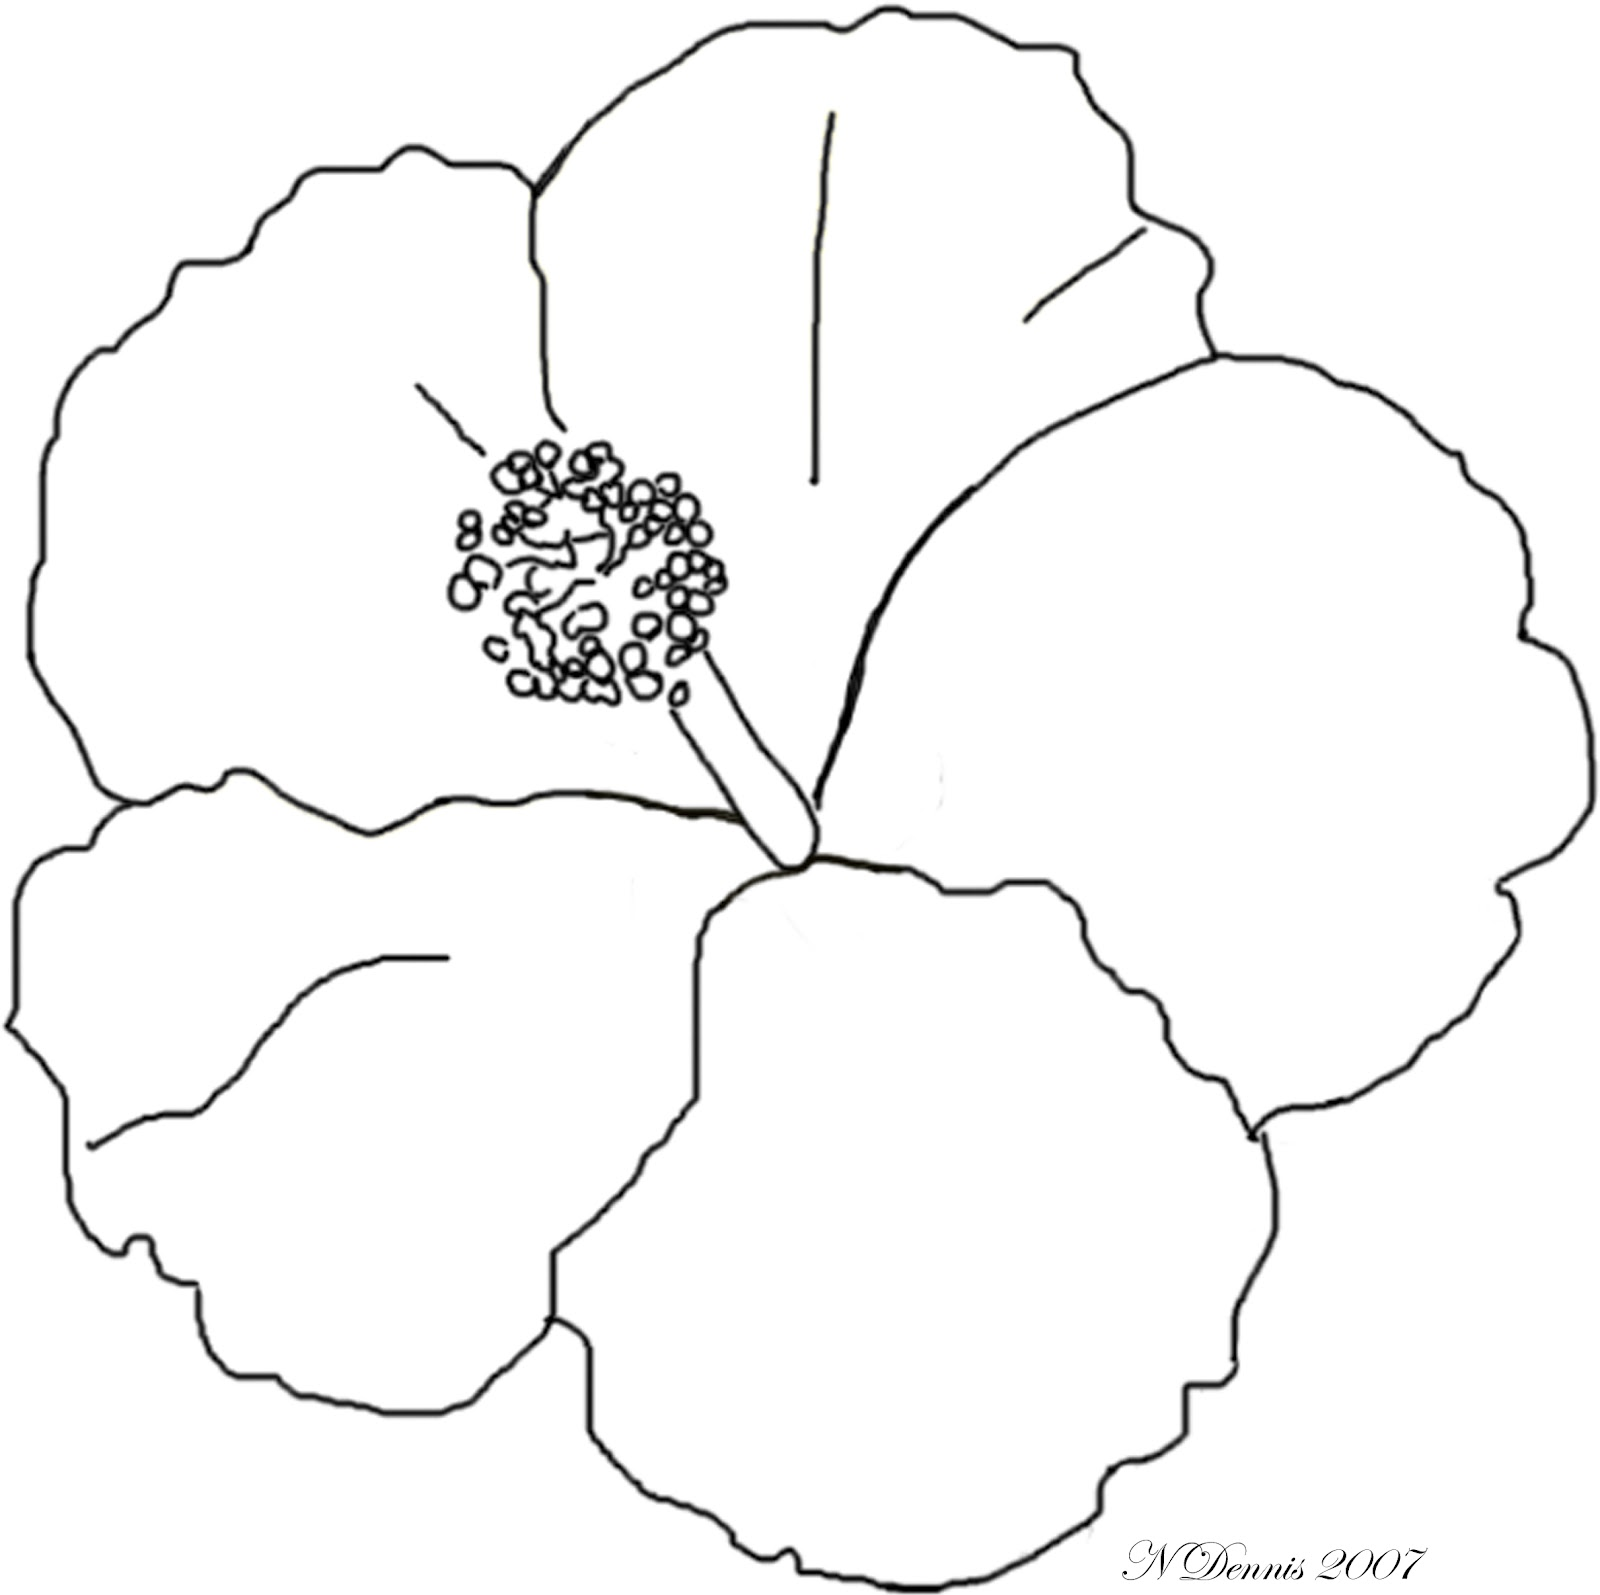 Coloring Pages Of Hibiscus Flowers : Nora s nifty notions just pictures